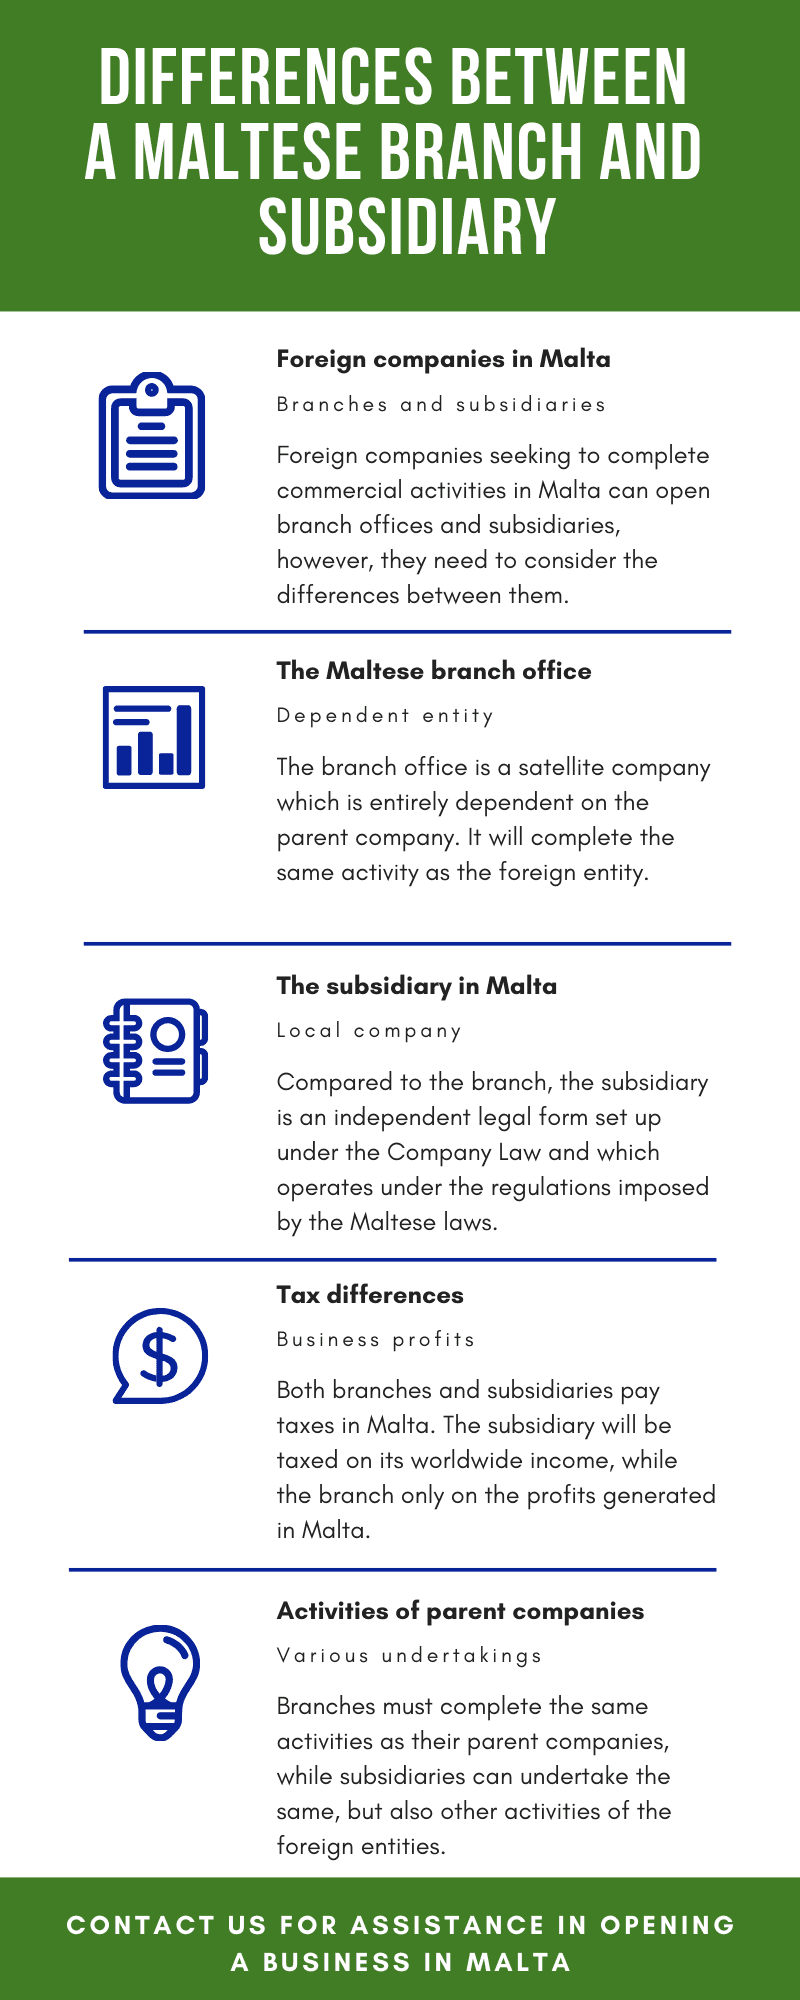 The differences between a Maltese branch and subsidiary